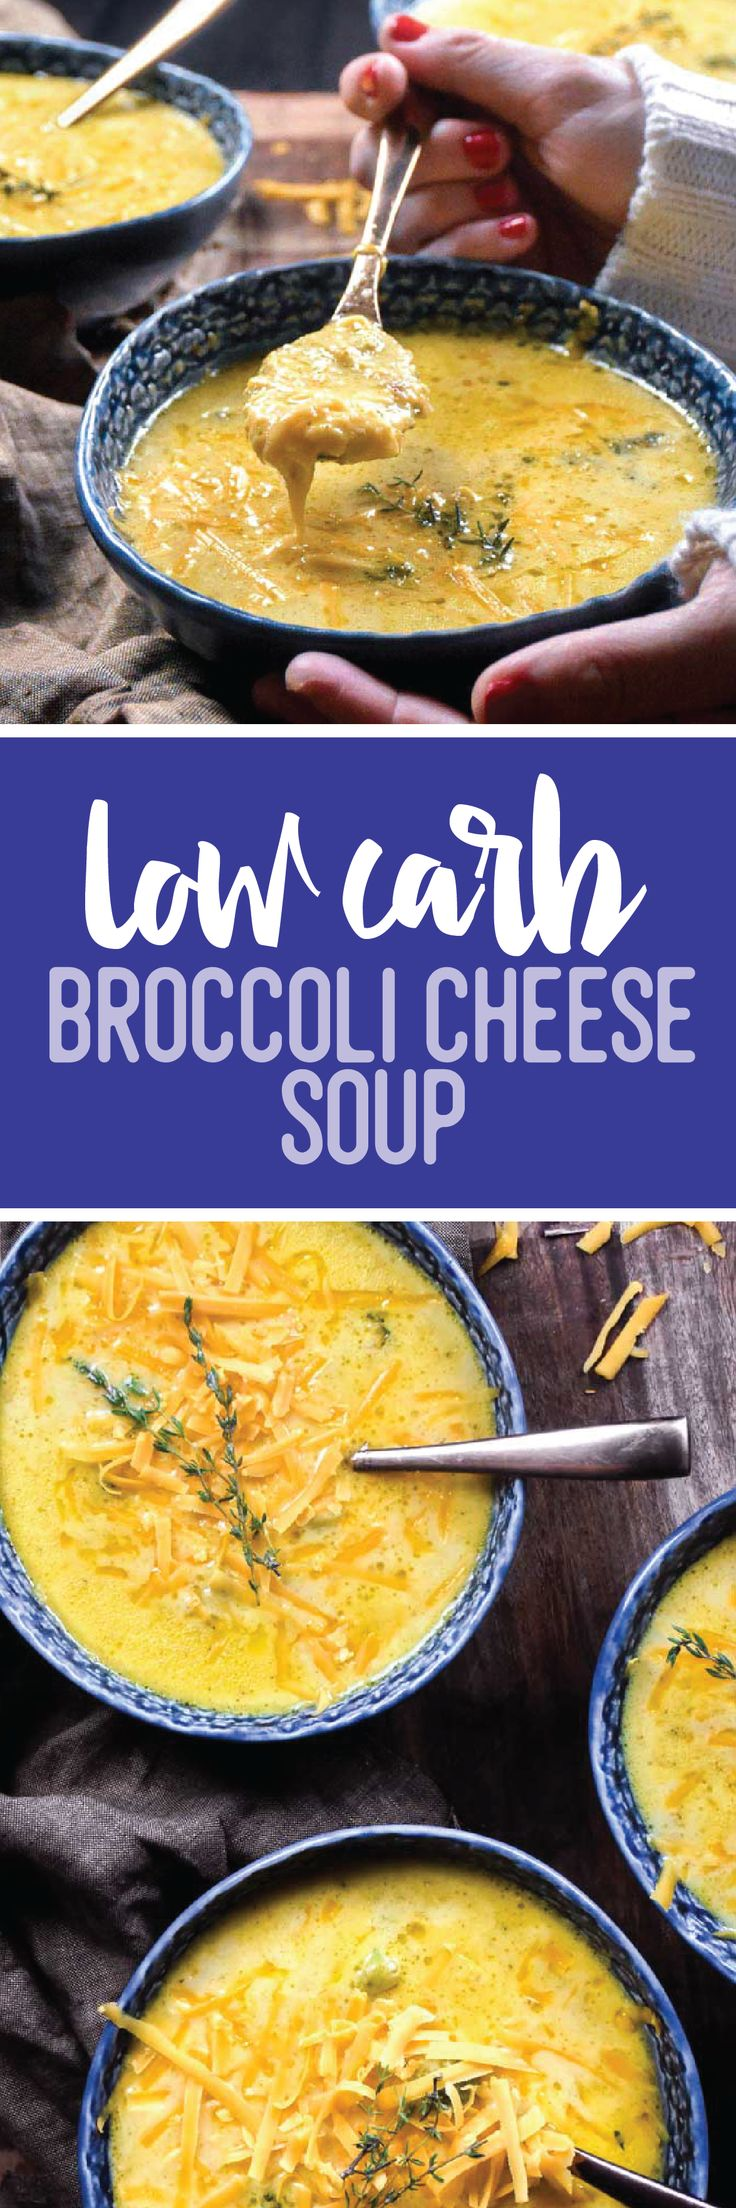 Comfort in a bowl, this low carb broccoli cheese soup will warm you from the inside out!